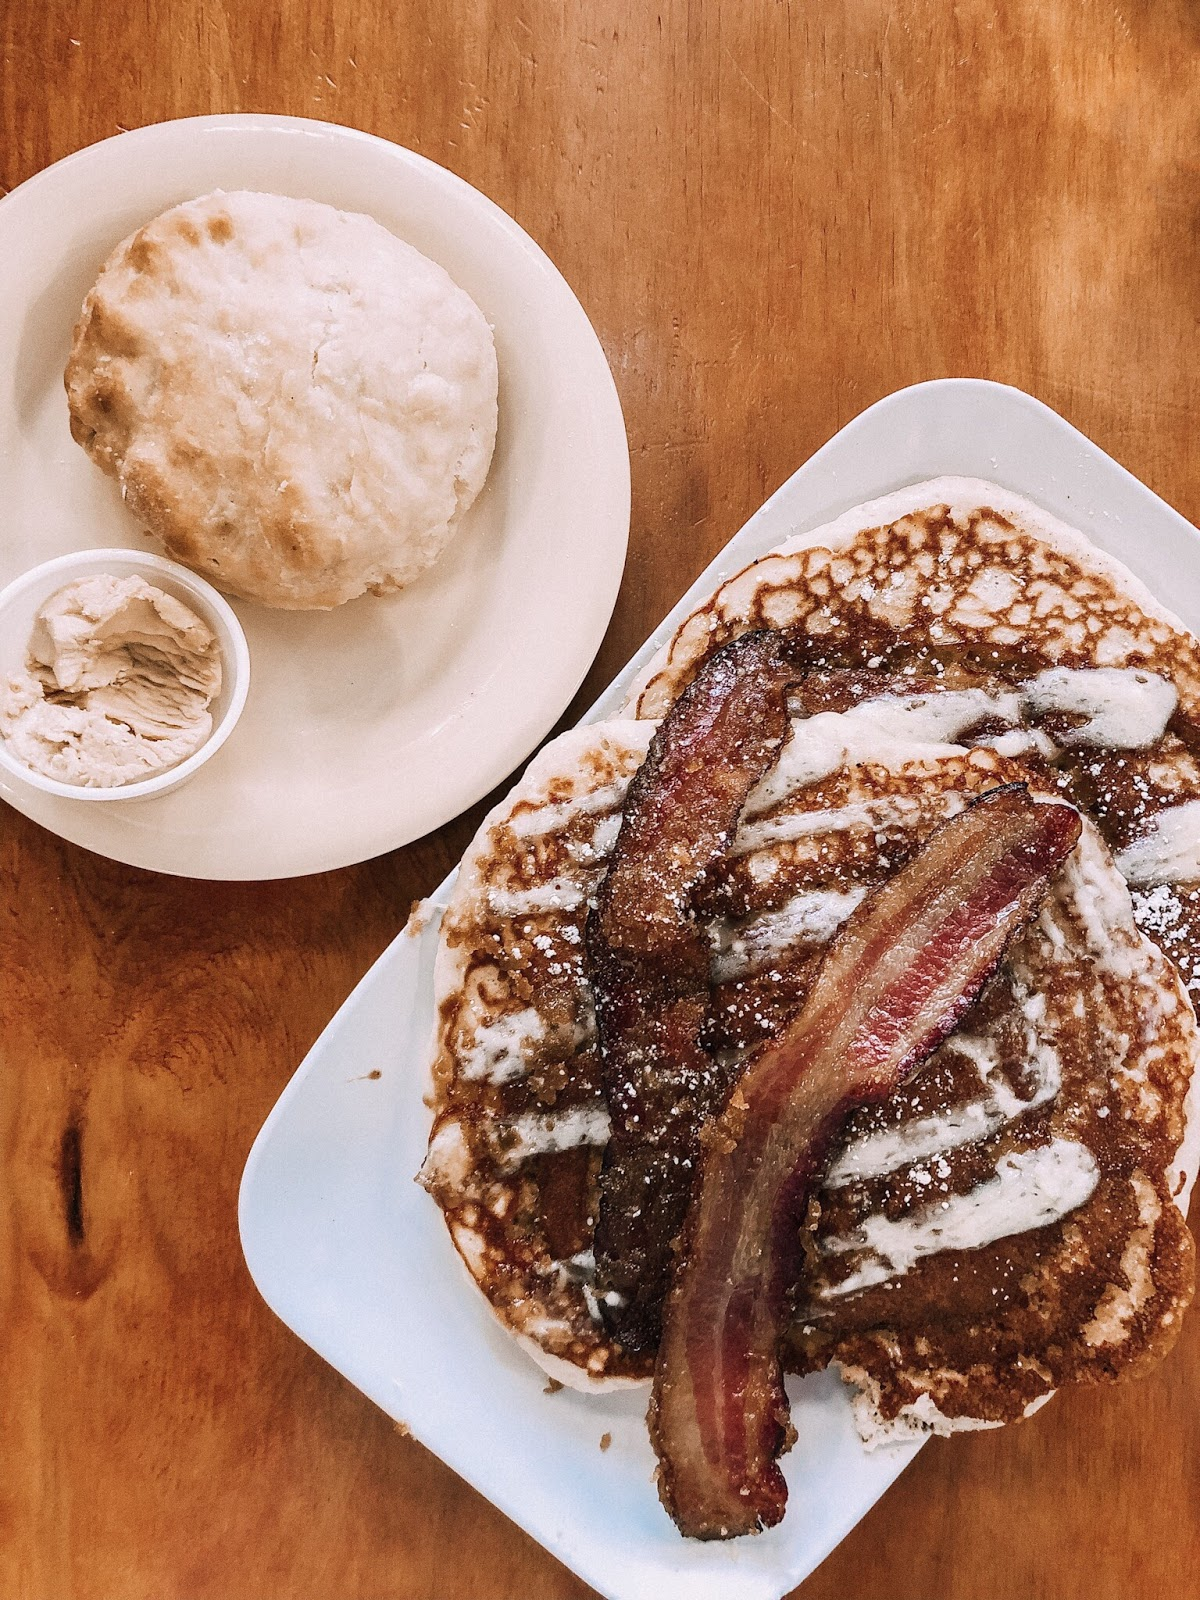 Cinnamon Swirl Pancakes at The Ruby Slipper Cafe on Canal Street in New Orleans